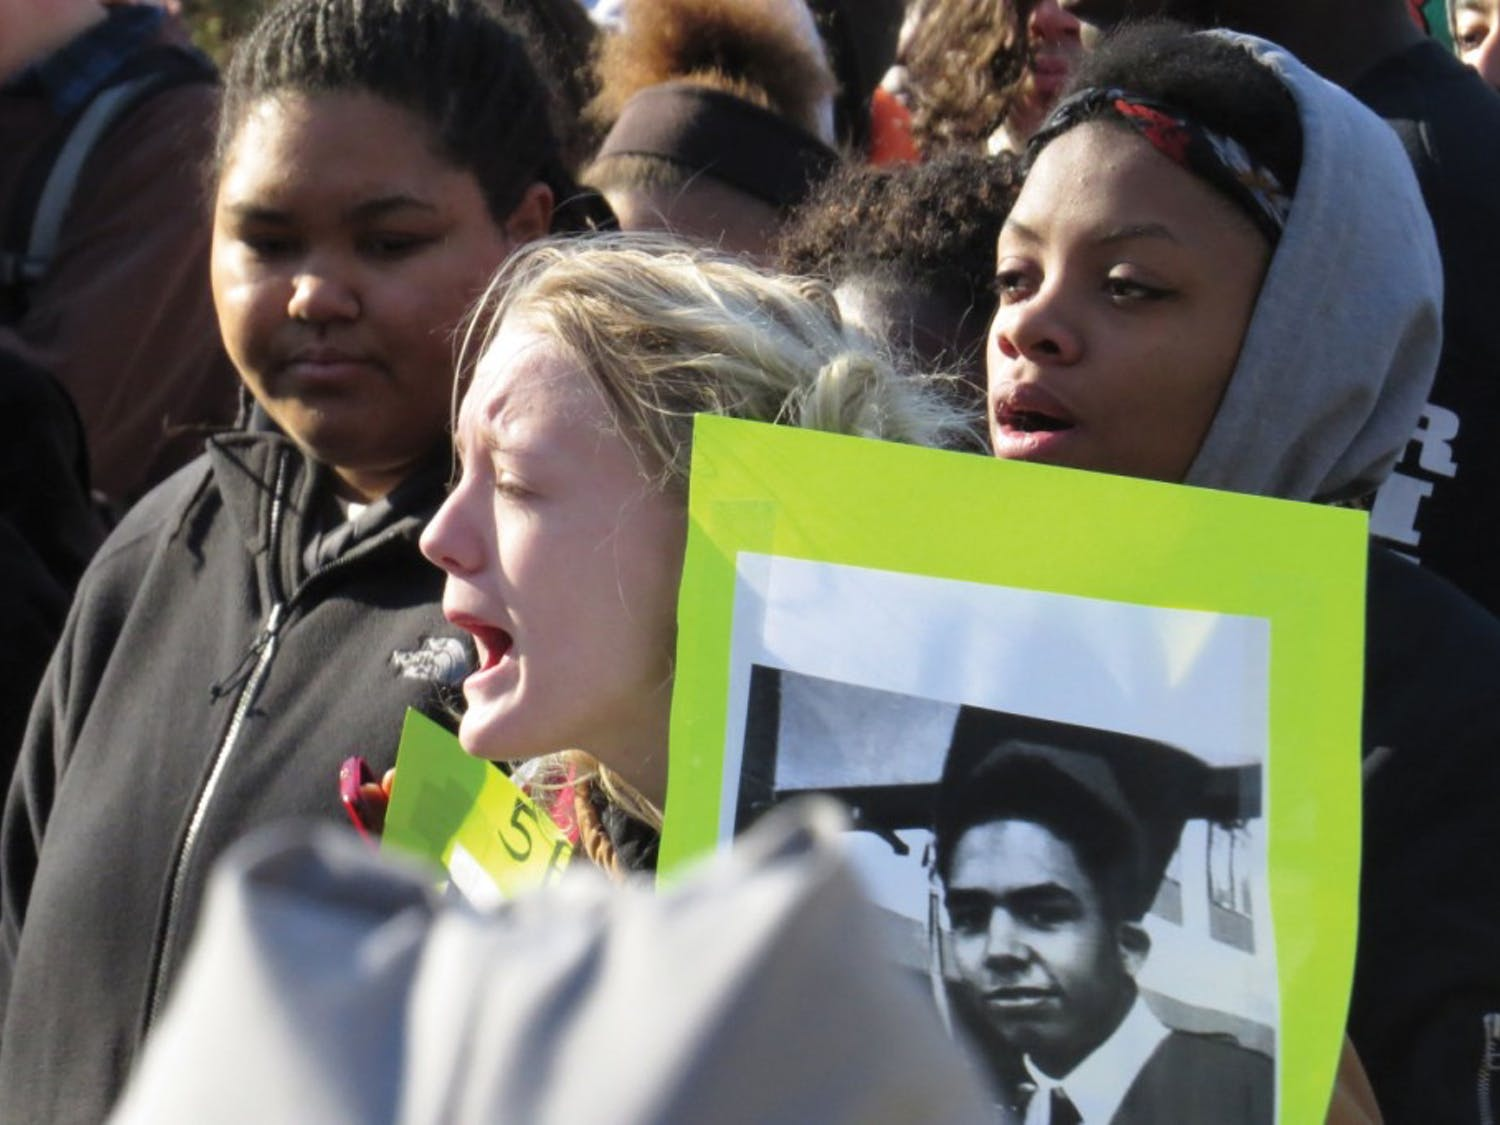 Protesters holding Tony Robinson's picture remind us all of the very human victim of this shooting.